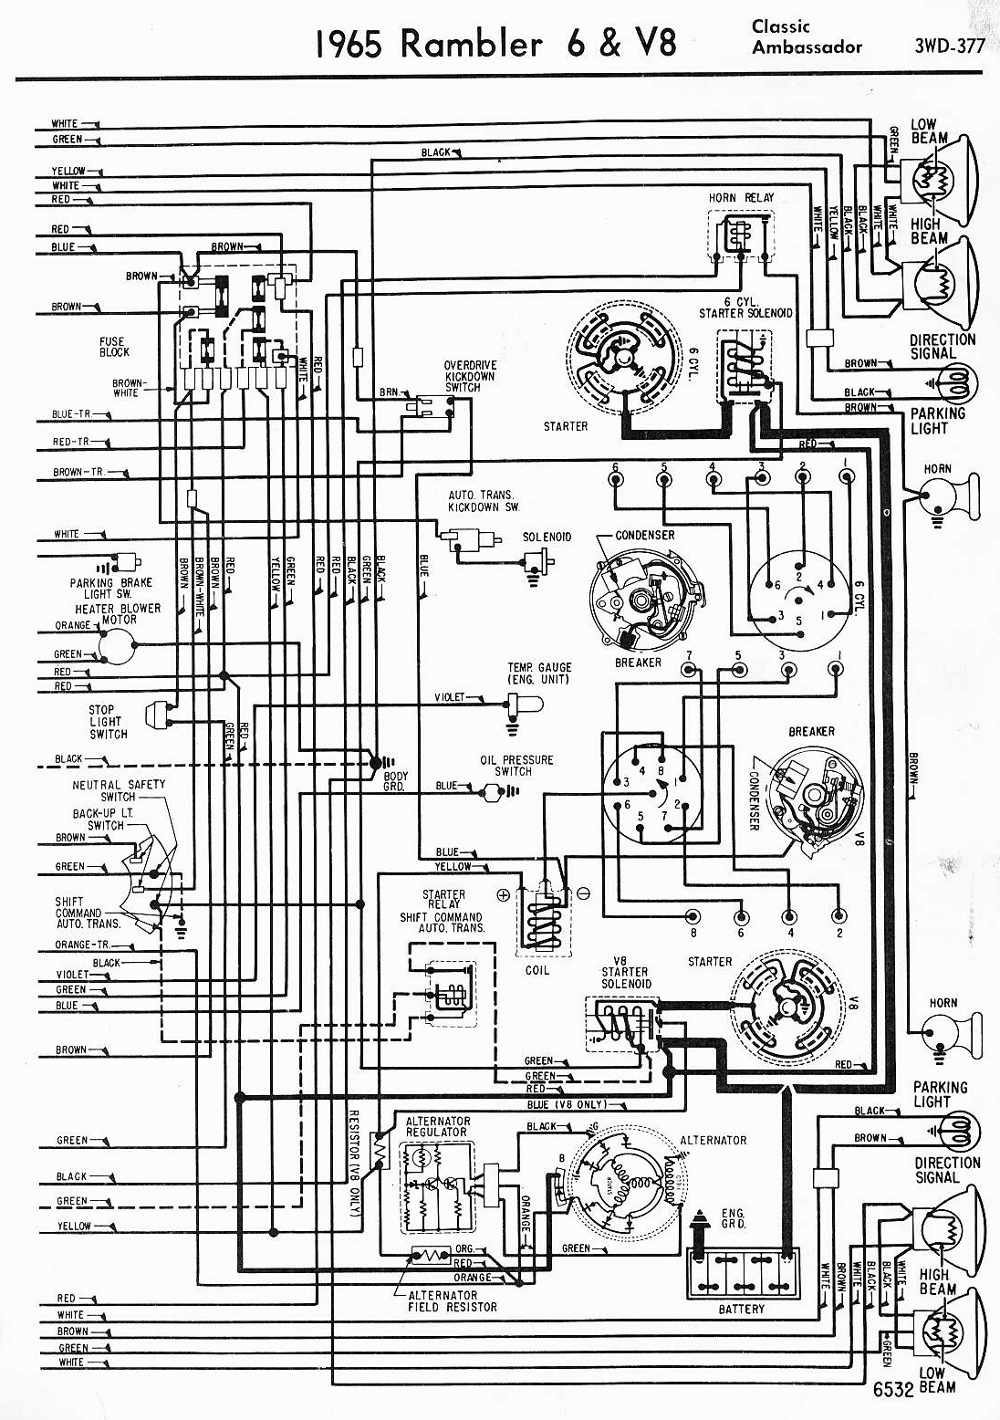 2013 Ford Transit Connect Wiring Diagram Libraries Flex 2012 For Professional U20222012 Electrical